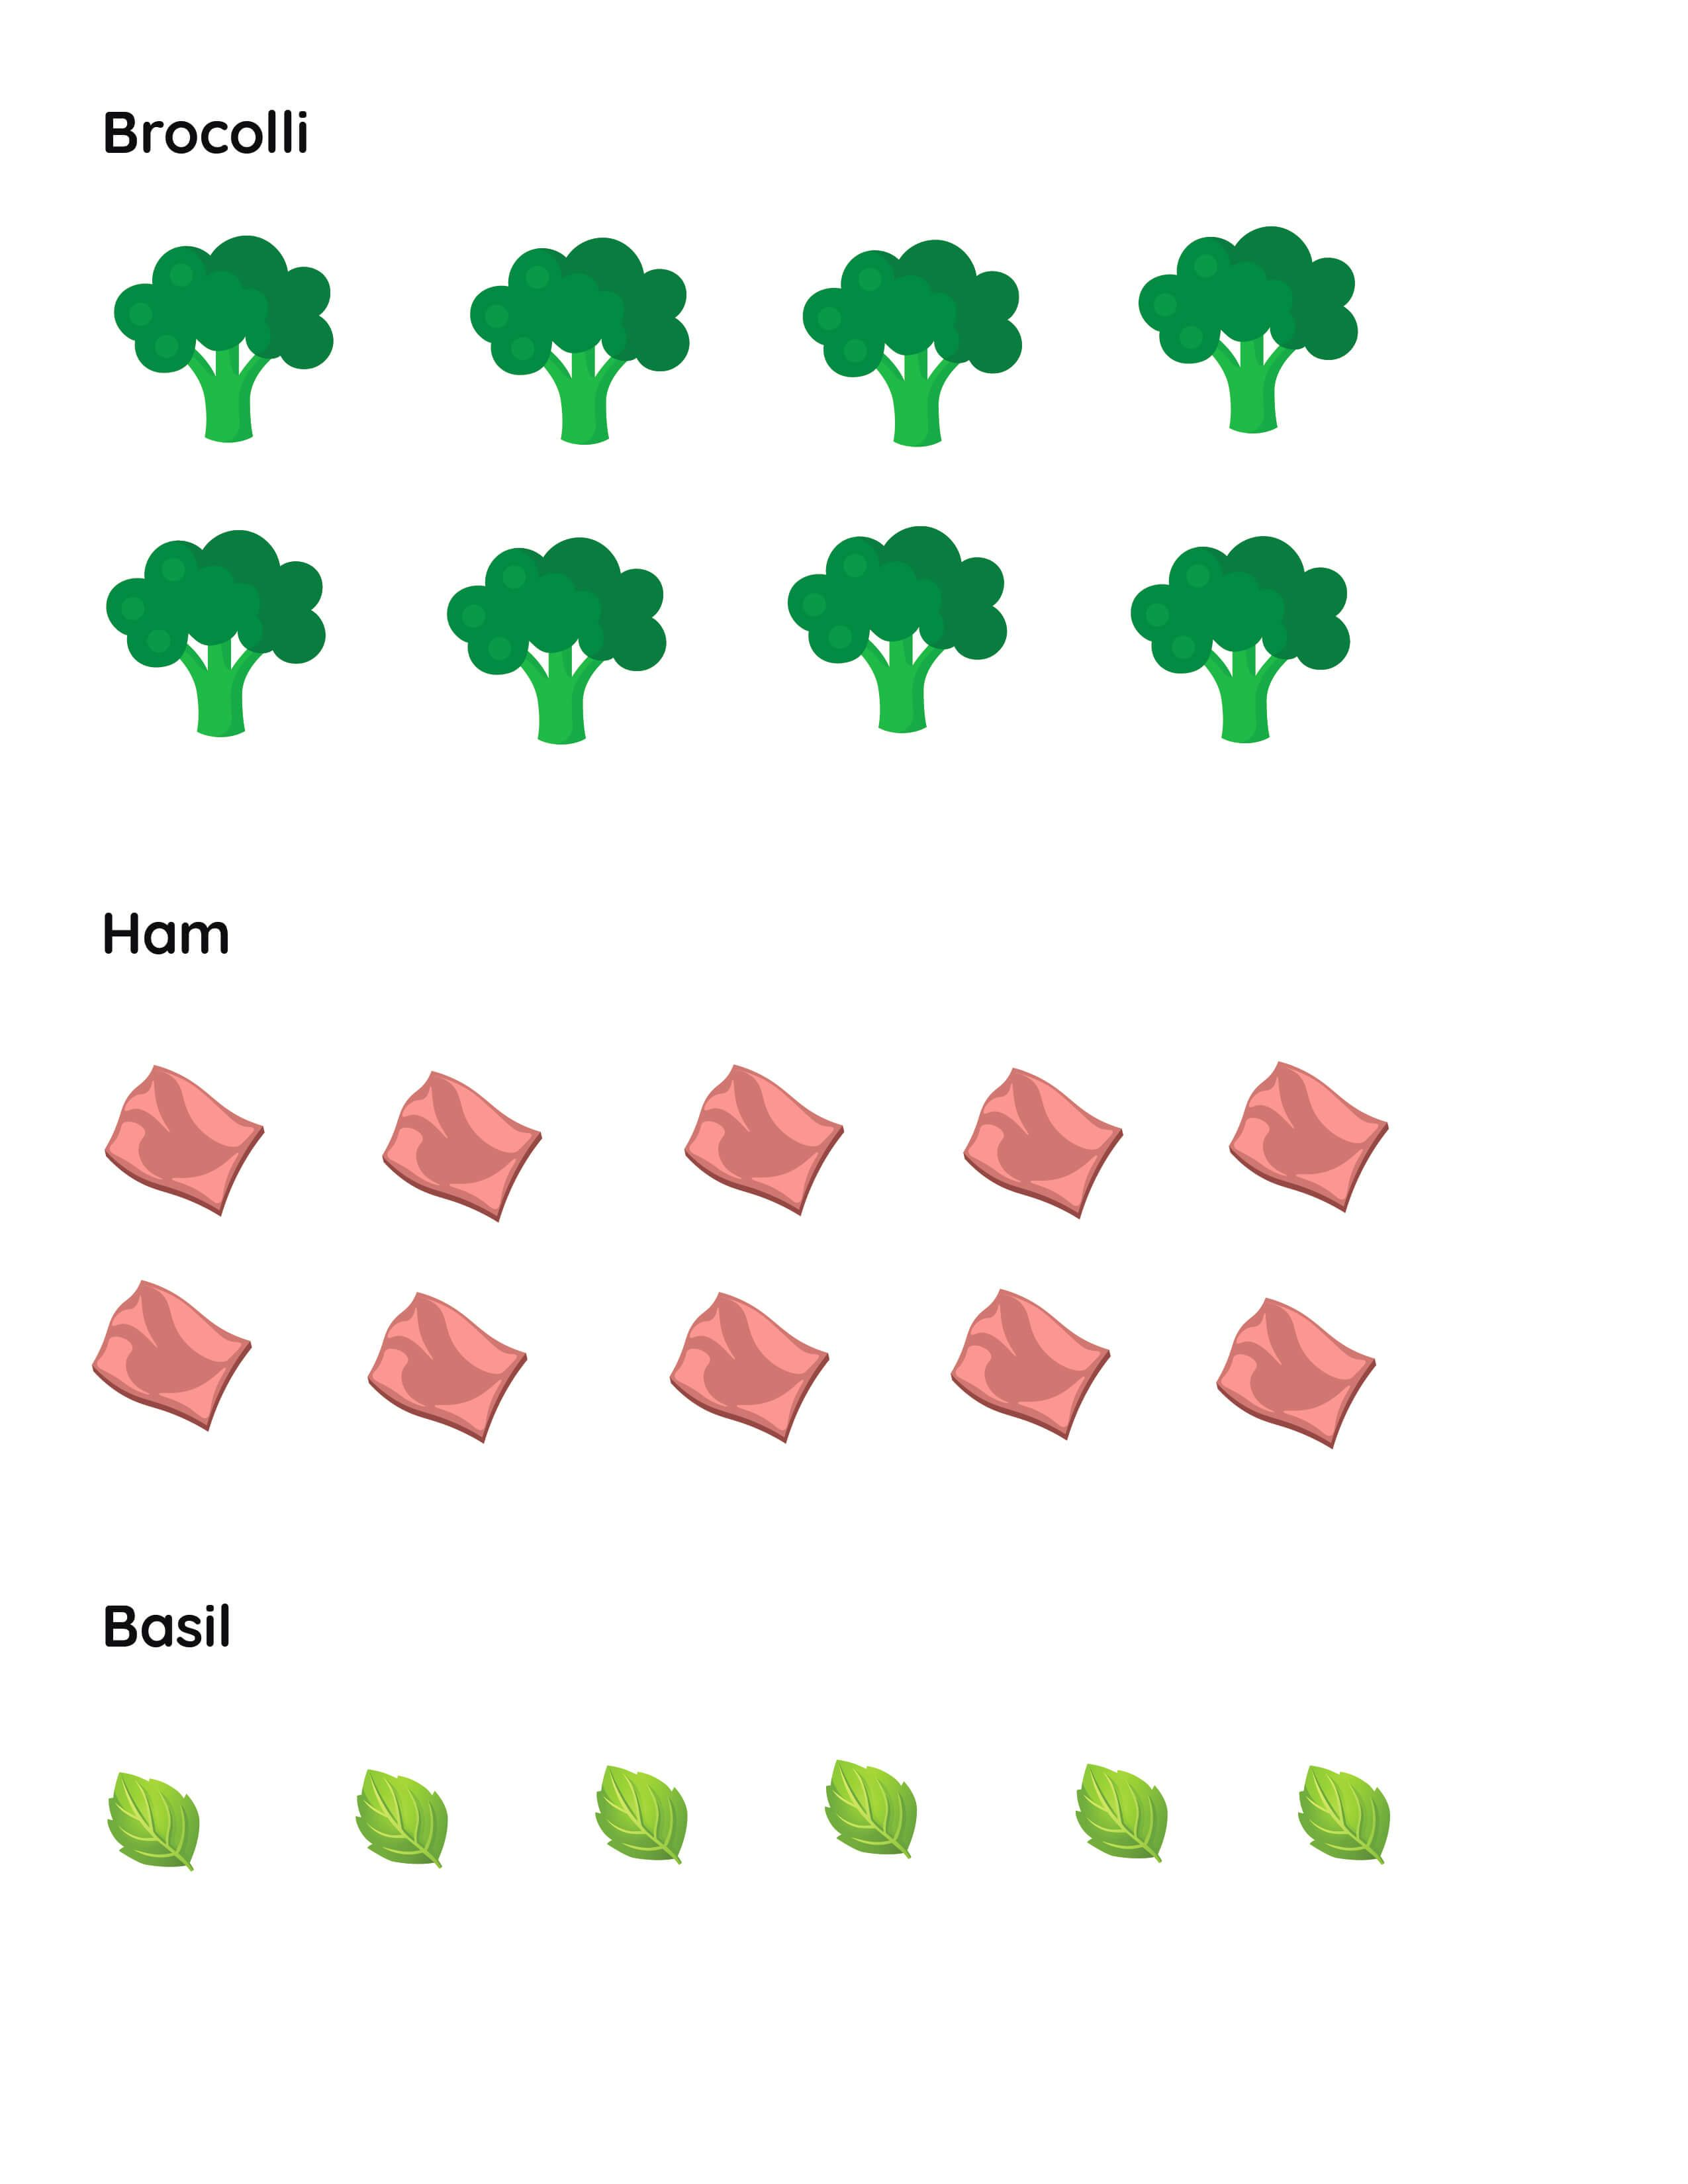 Make A Pizza Printable Pizza Toppings Cutouts Mrs Merry In 2021 How To Make Pizza Fun Worksheets For Kids Diy Crafts For Kids Easy [ 3300 x 2550 Pixel ]